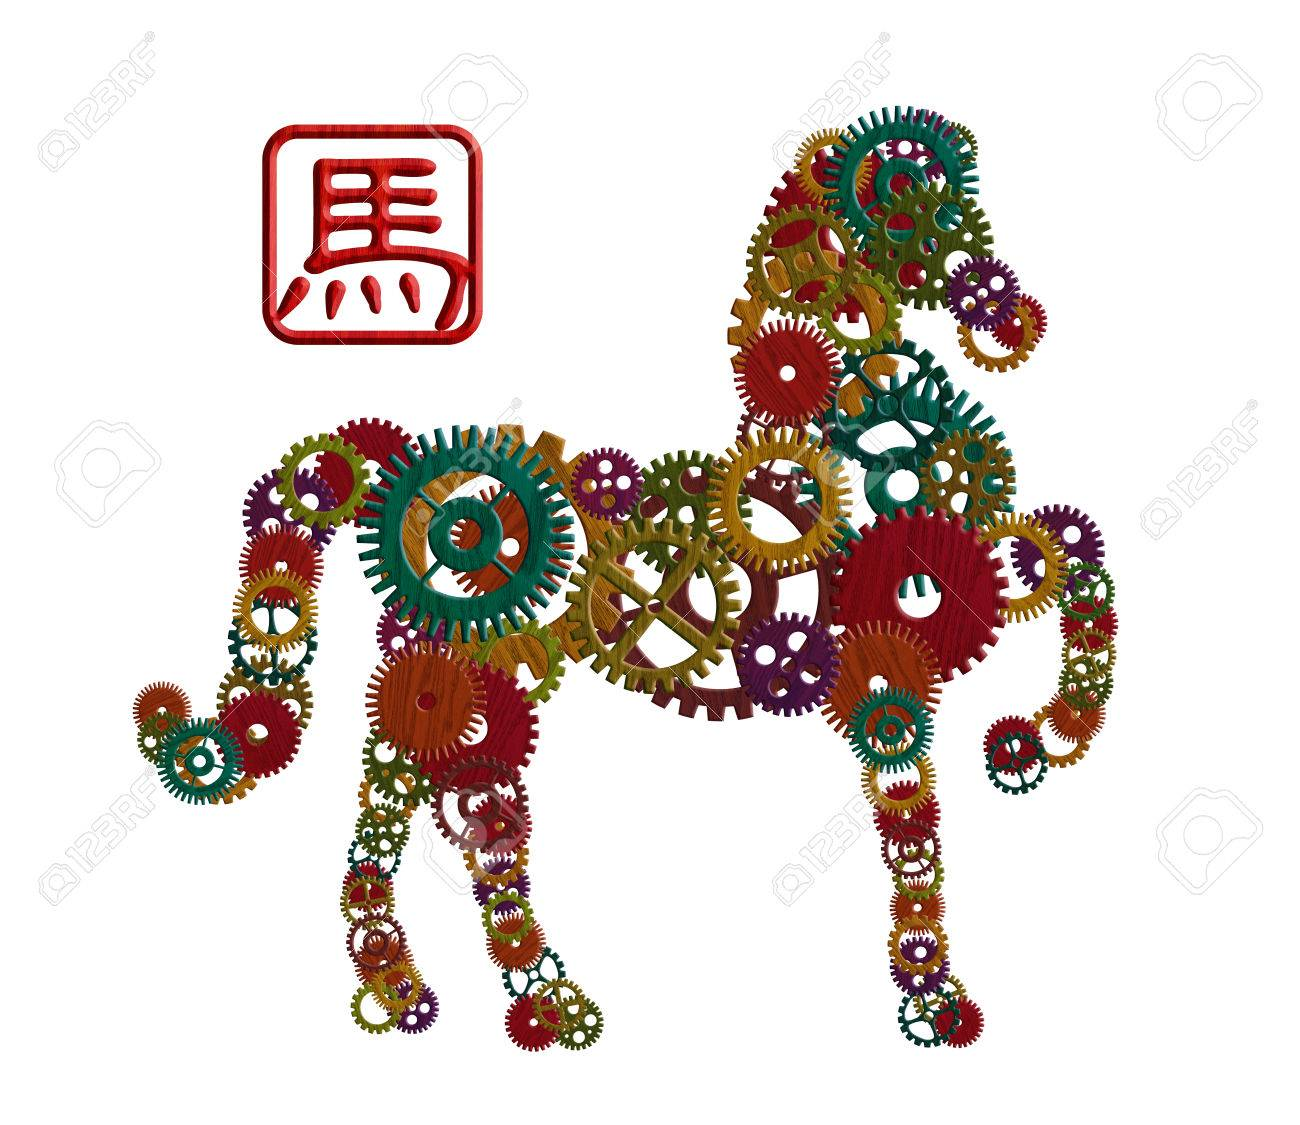 2014 chinese lunar new year of the horse wood gear element forward 2014 chinese lunar new year of the horse wood gear element forward pose silhouette with horse buycottarizona